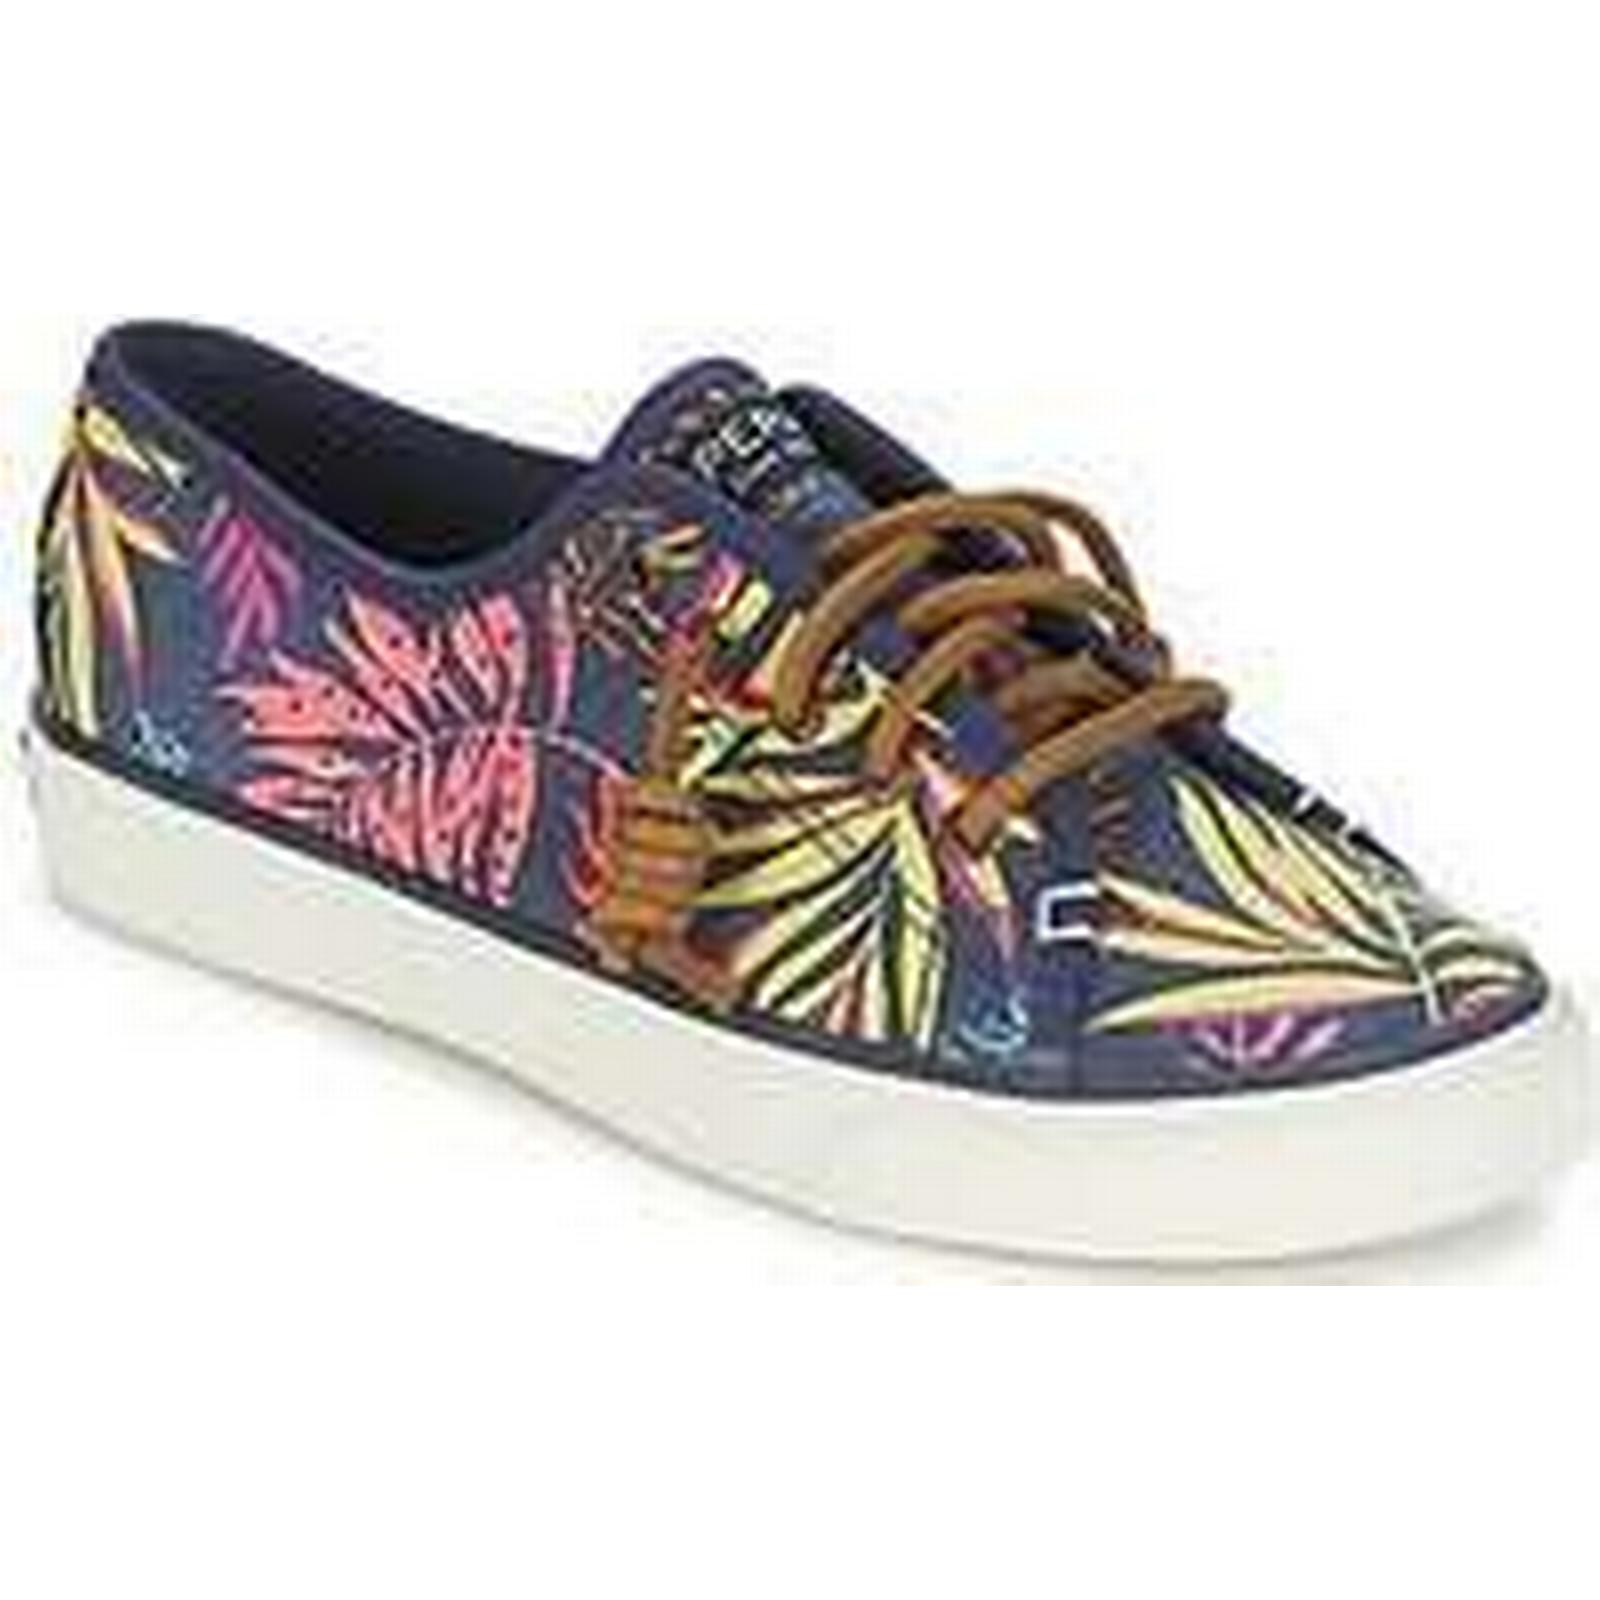 Spartoo.co.uk Sperry Top-Sider SEACOAST SEAWEED PRINT Multicolour women's Shoes (Trainers) in Multicolour PRINT ded95a